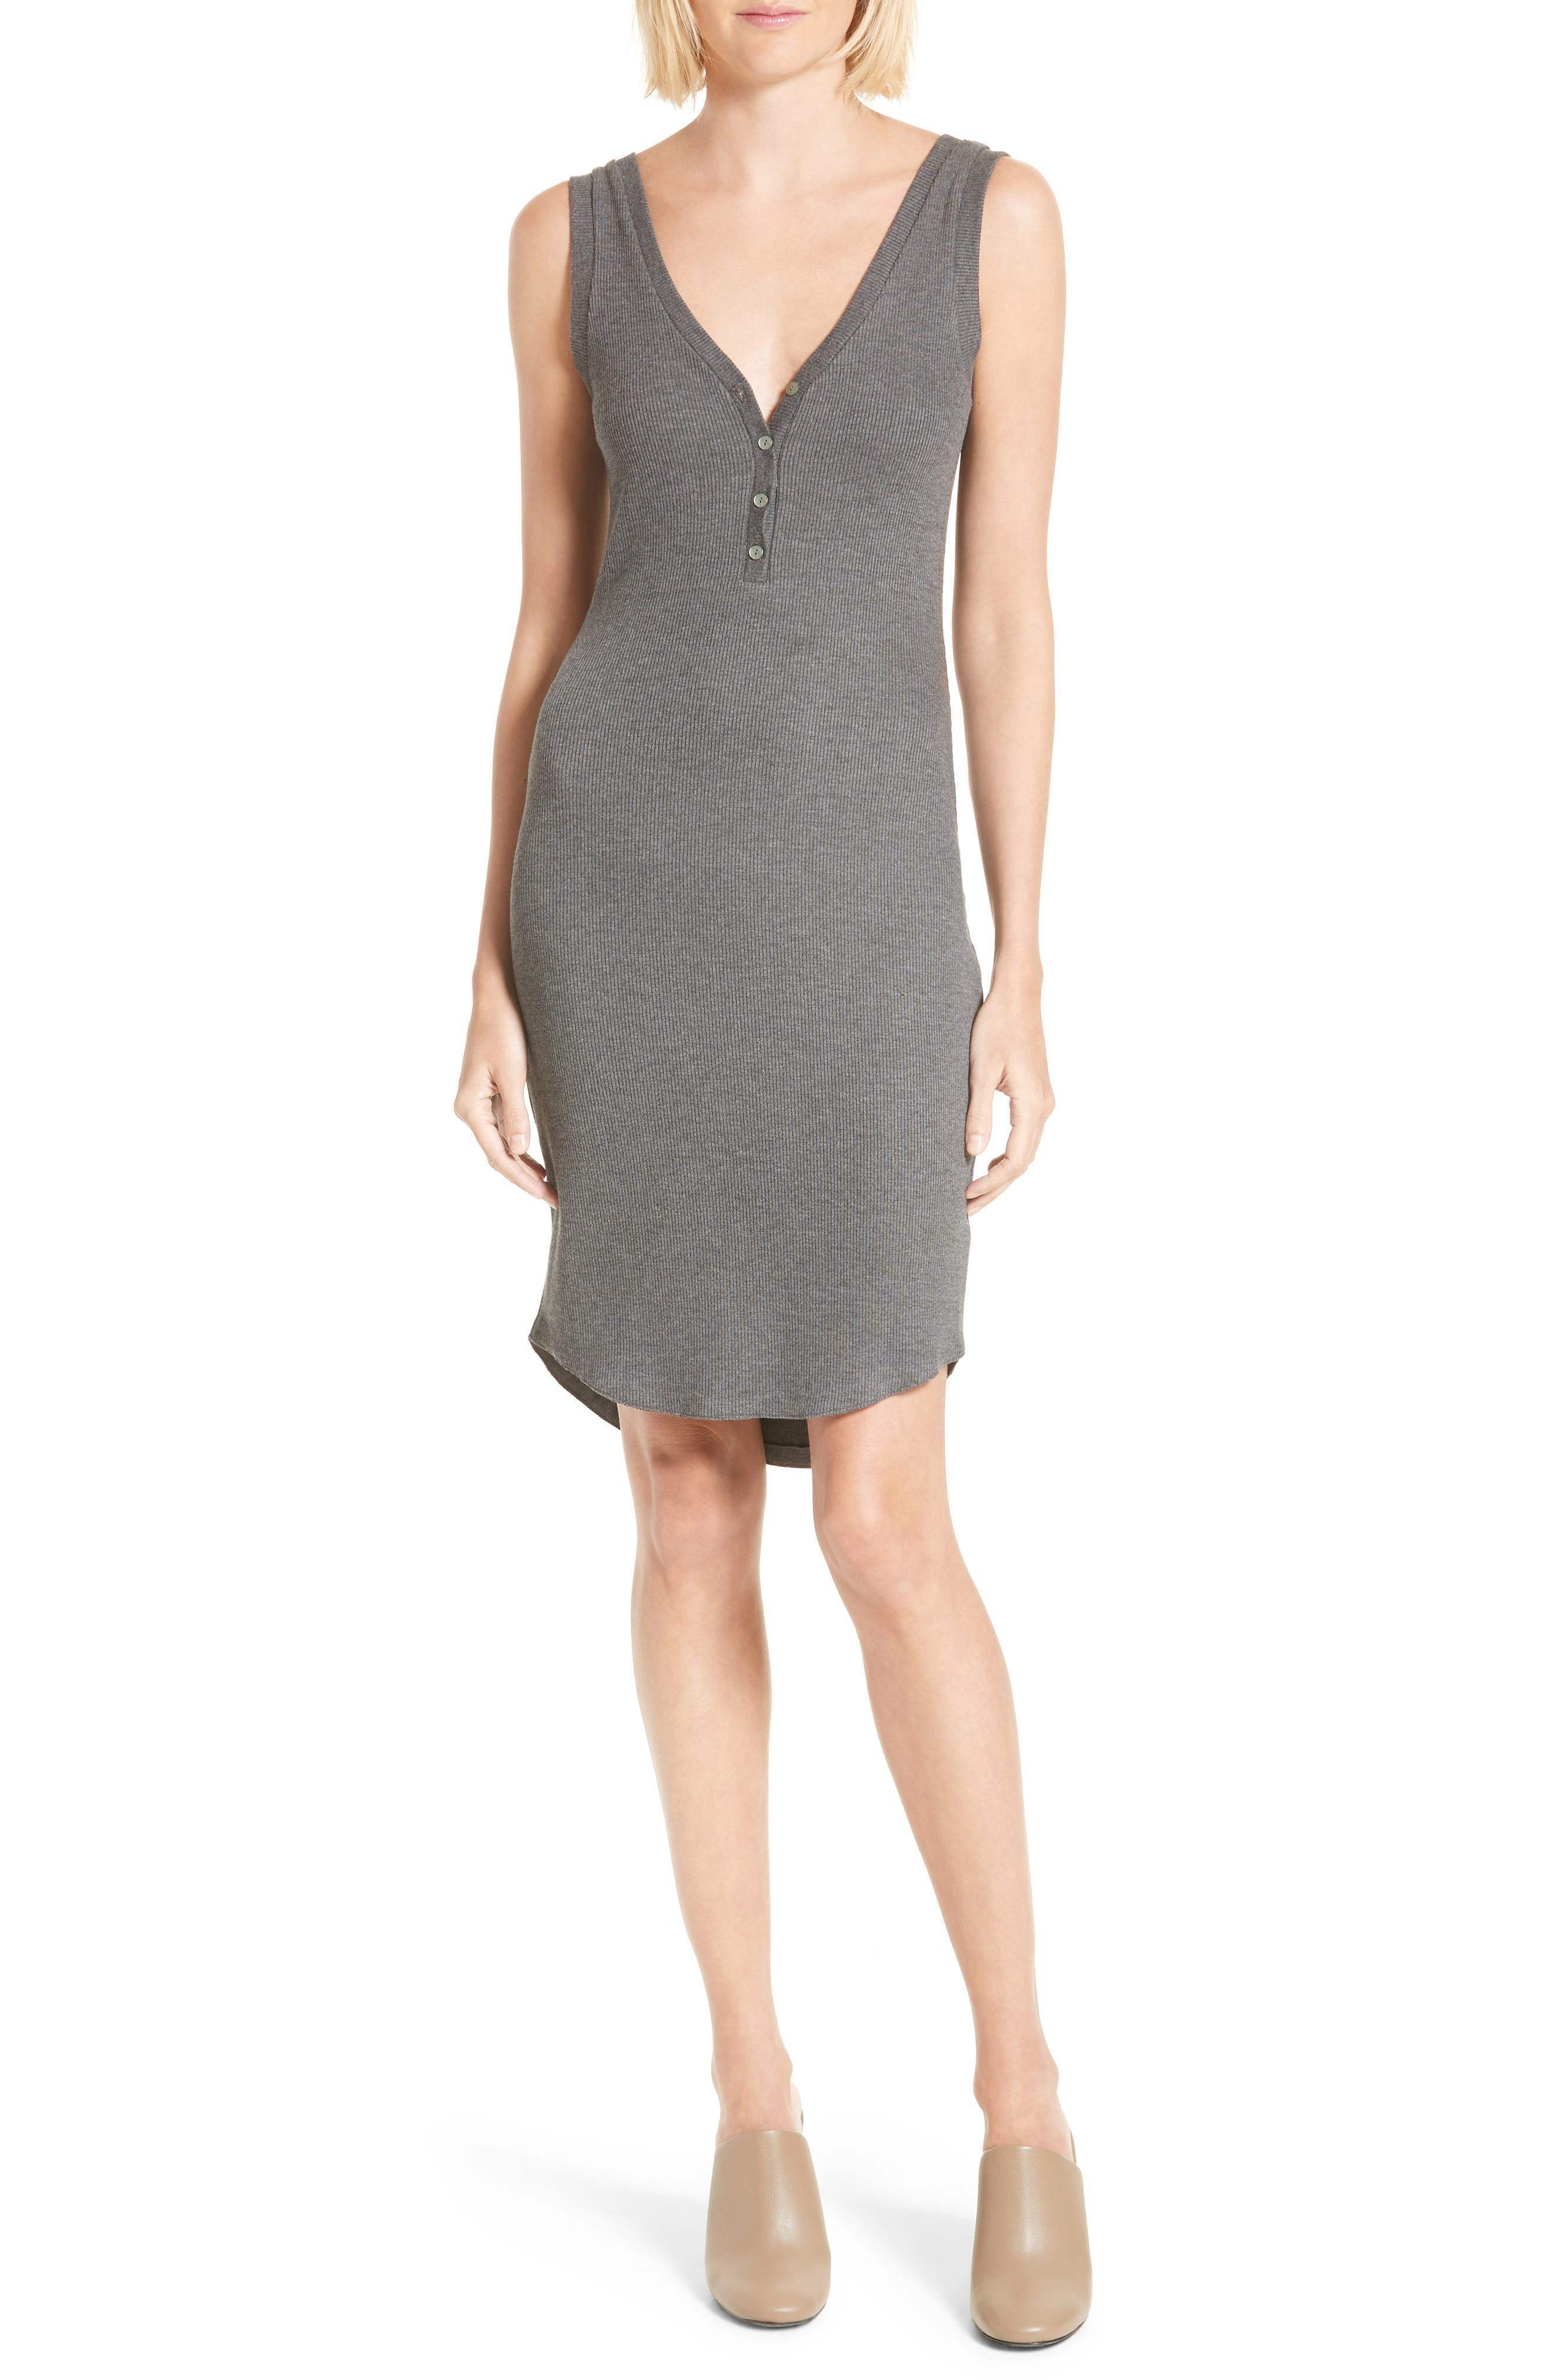 Everly Henley Tank Dress,                         Main,                         color, Heather Grey